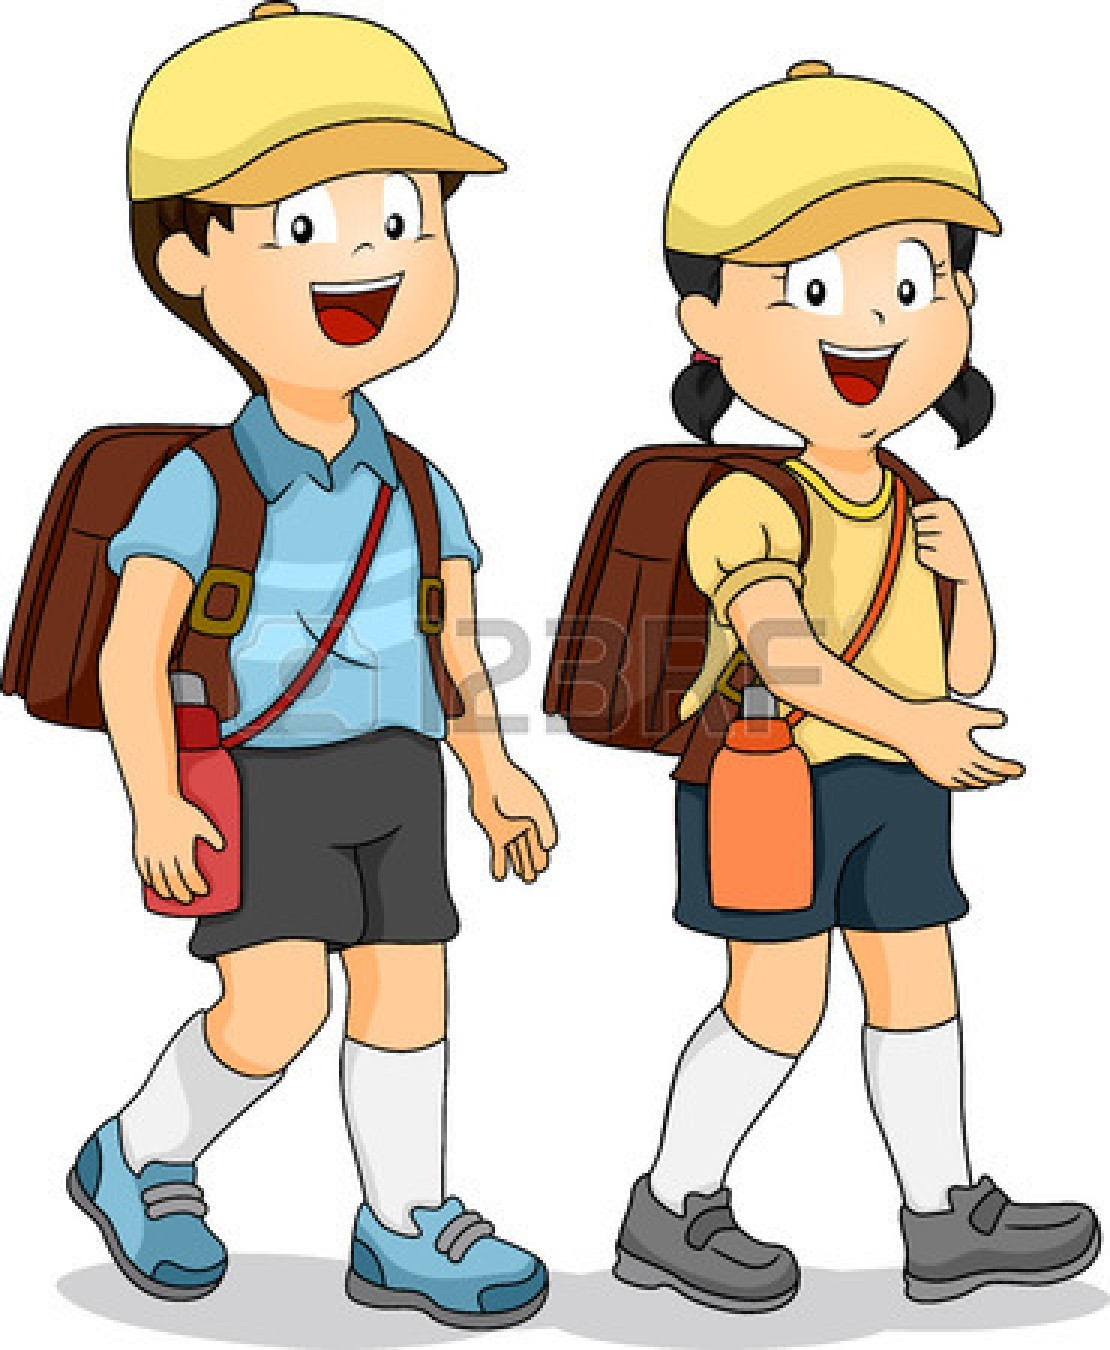 students clipart ozil almanoof co rh ozil almanoof co clipart student thinking clipart students in classroom